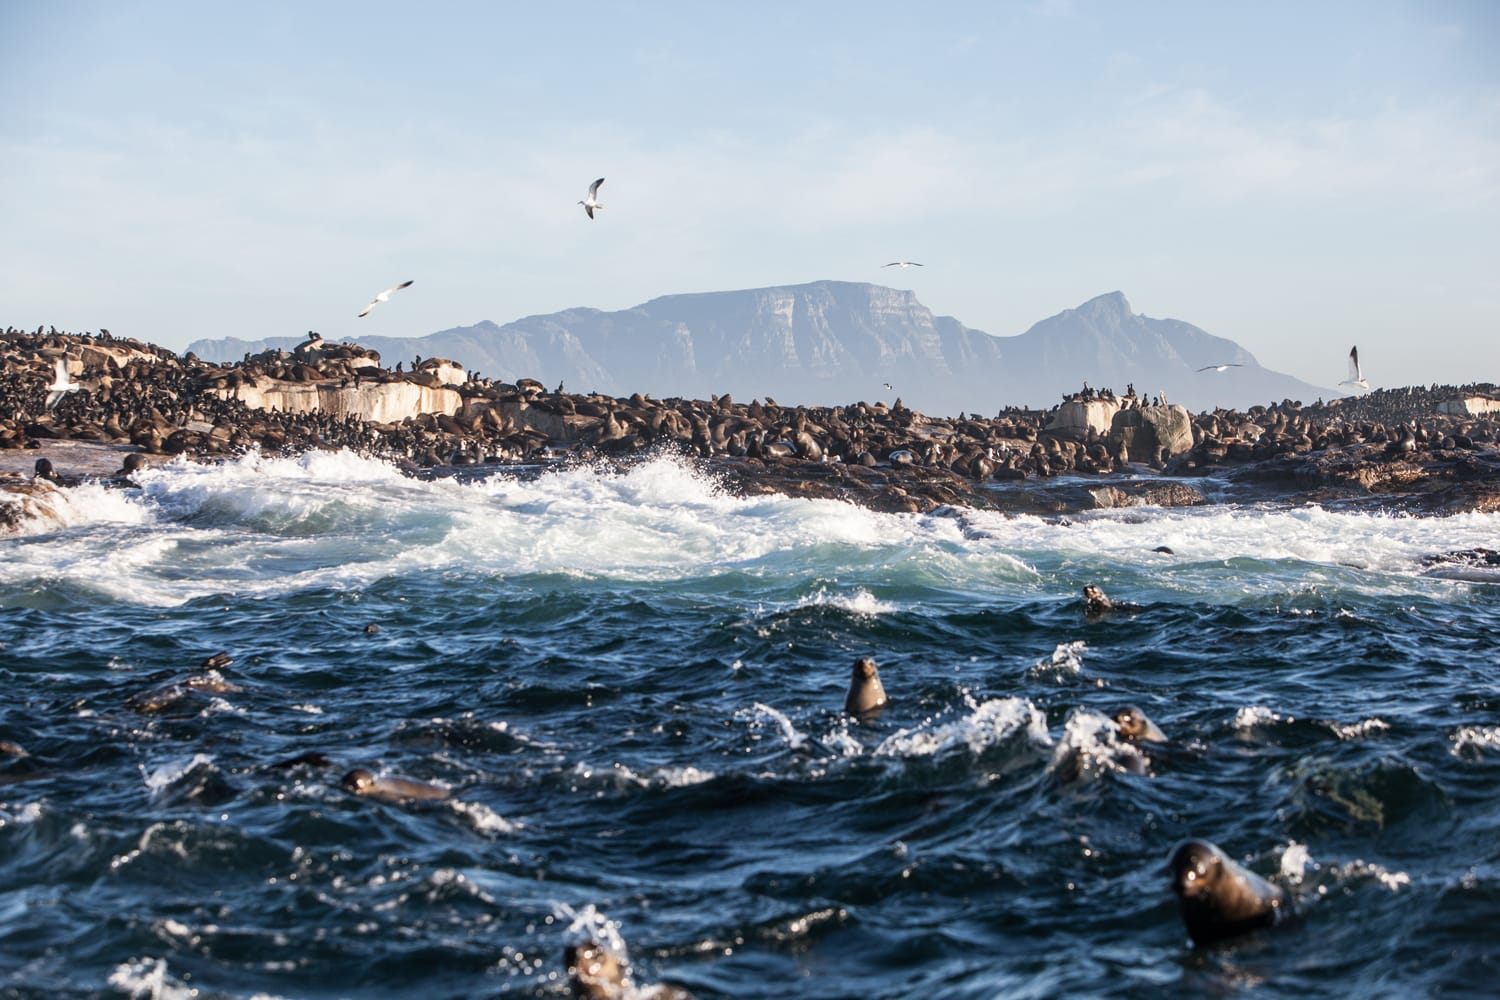 Cape Fur seals swim in the cold waters surrounding Seal Island in False Bay, South Africa